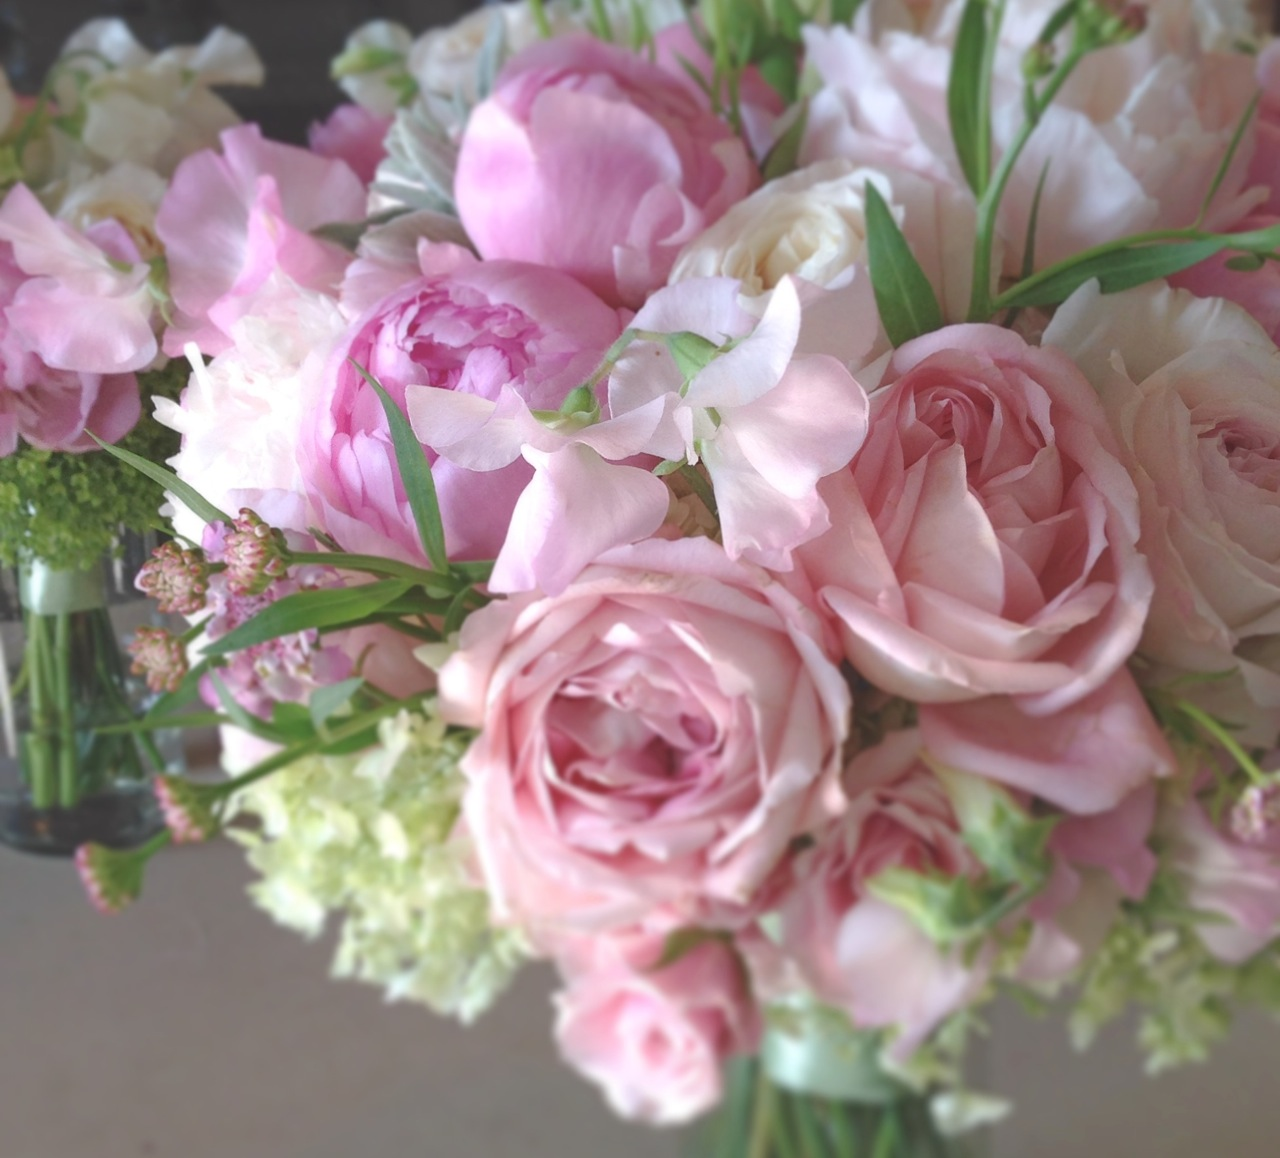 christopher flowers seattle bouquet blush pink green ivory peony garden rose sweet pea local - Garden Rose And Peony